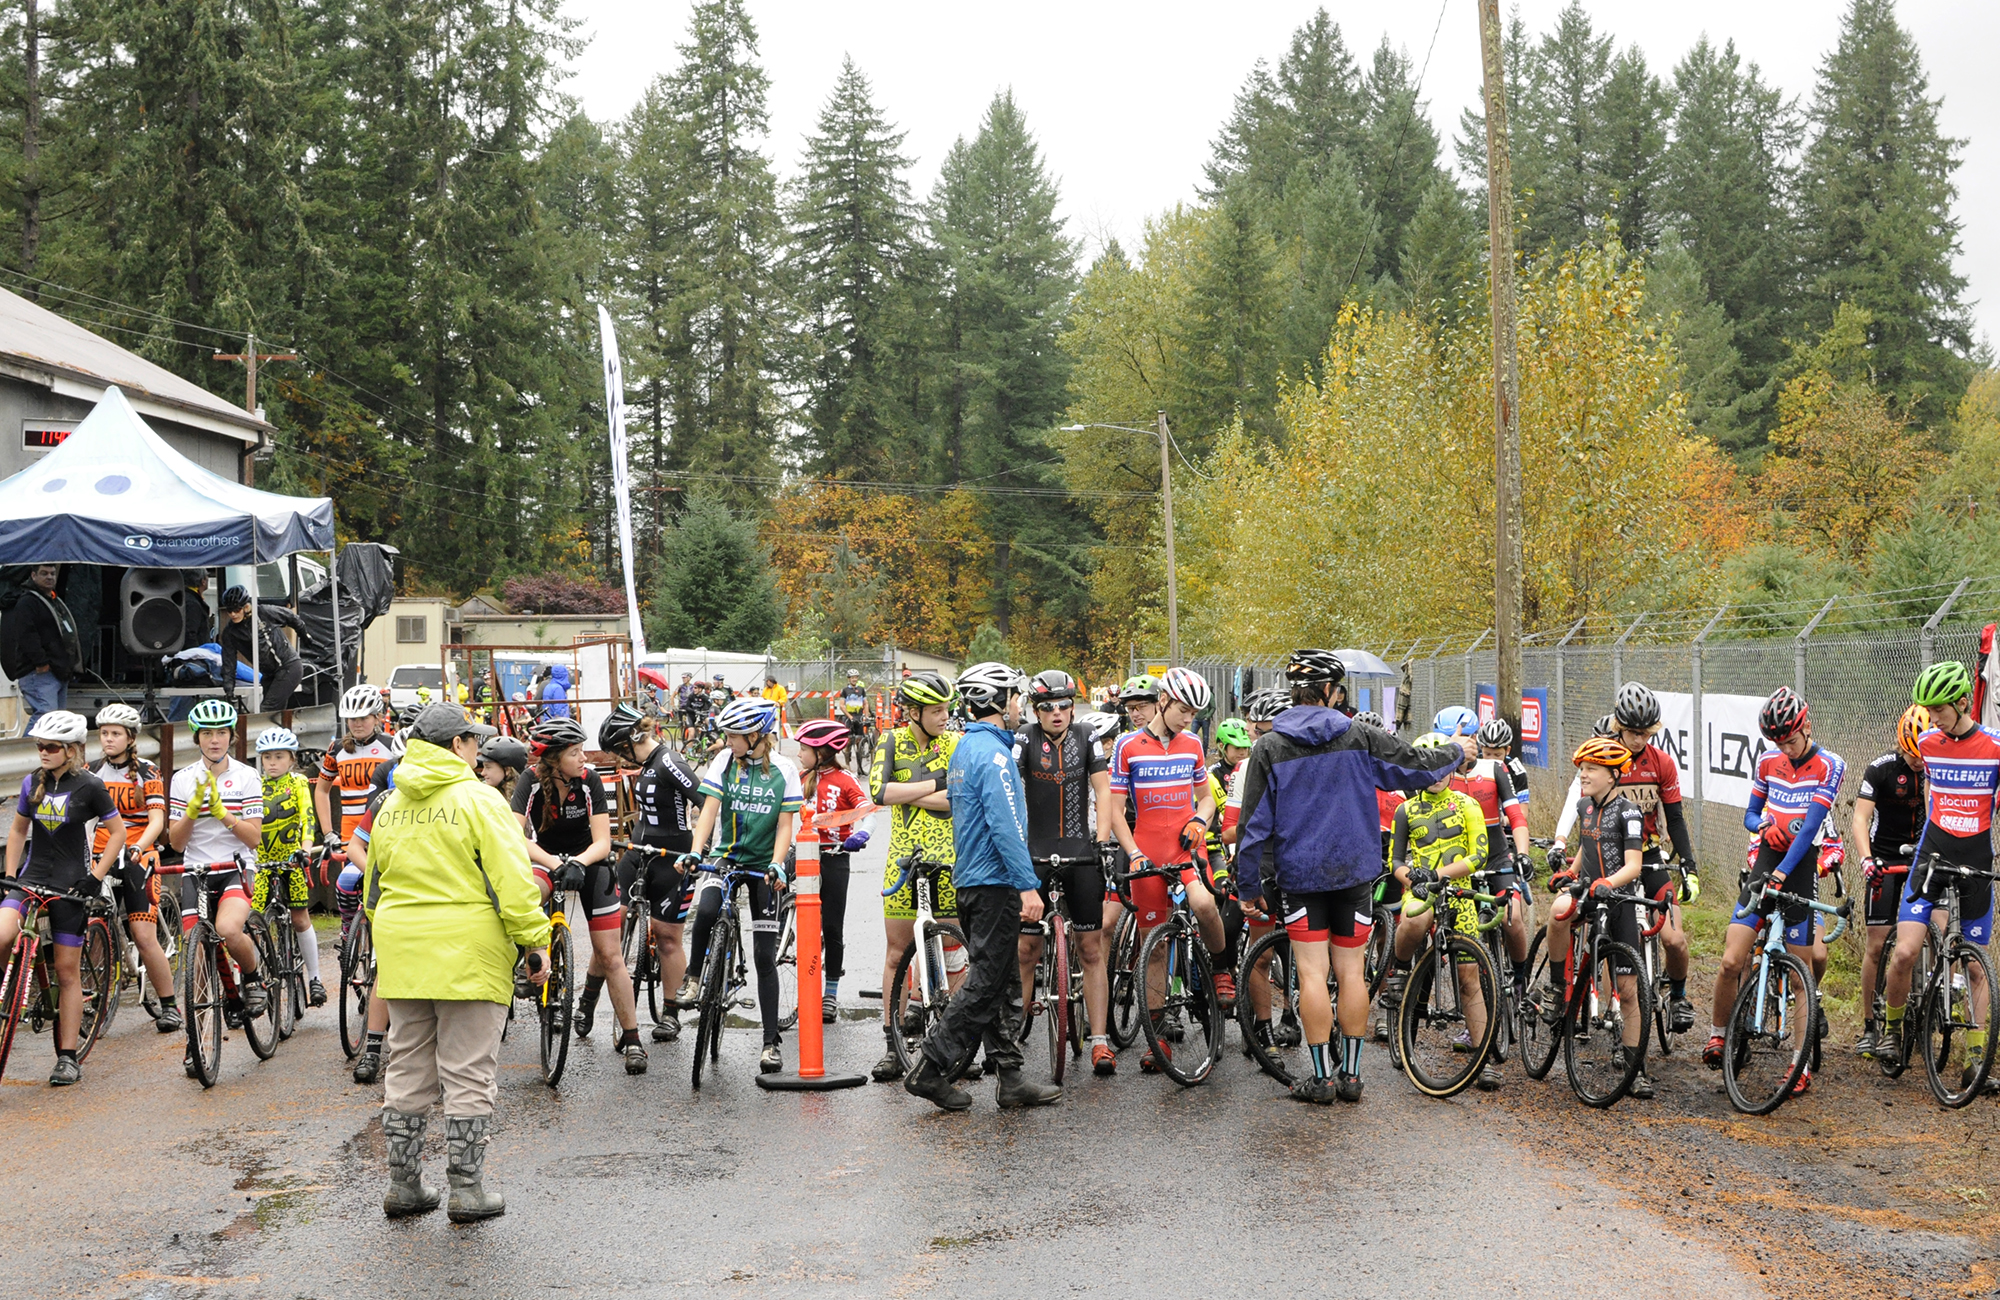 SellwoodCycle_CCBP_08